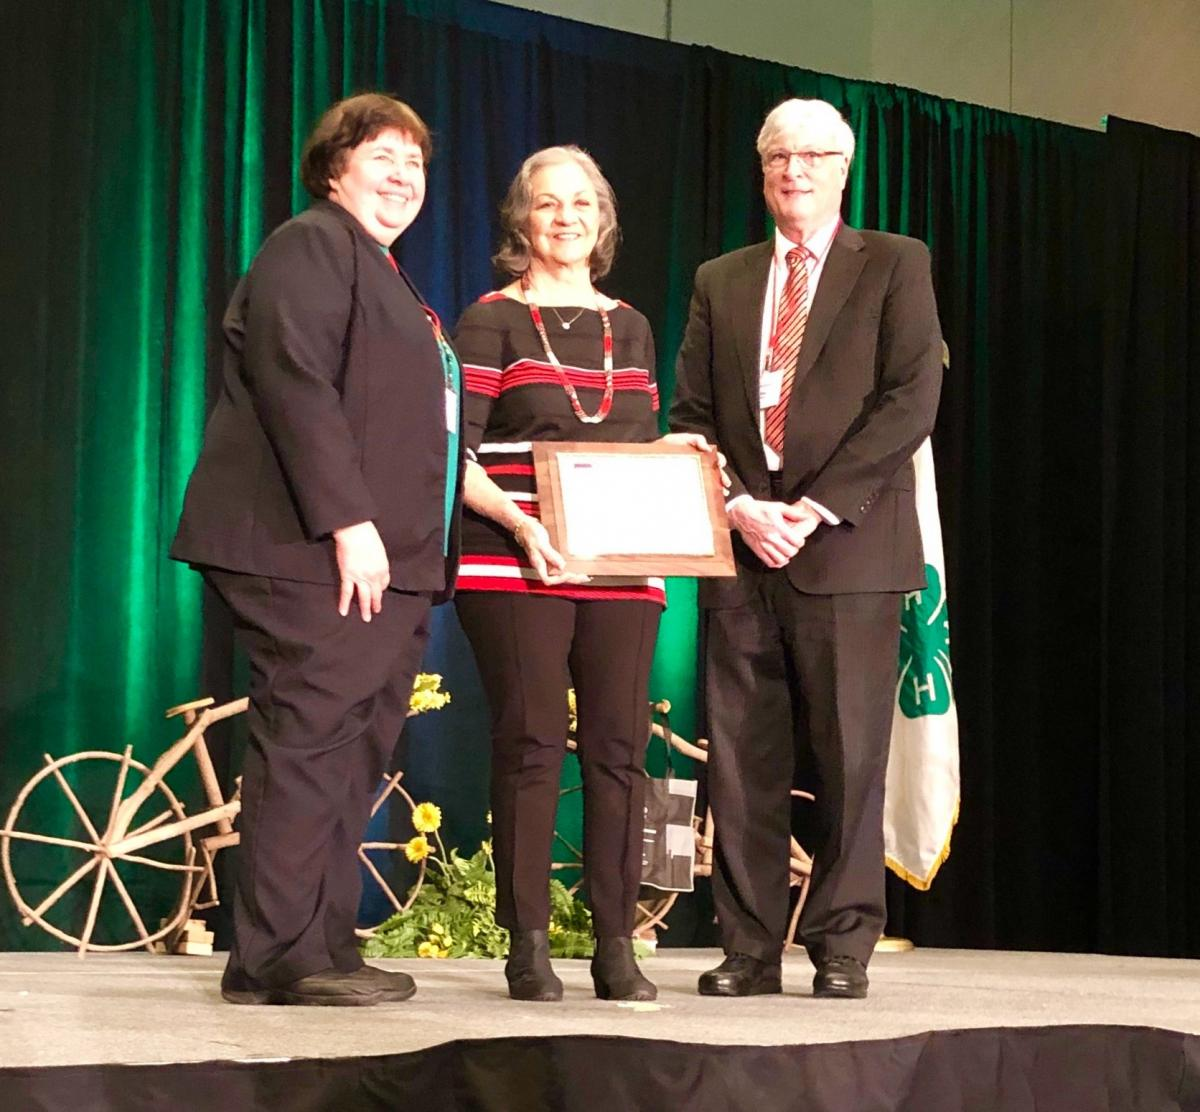 Pat received the Ohio Friend of 4-H award in 2019.